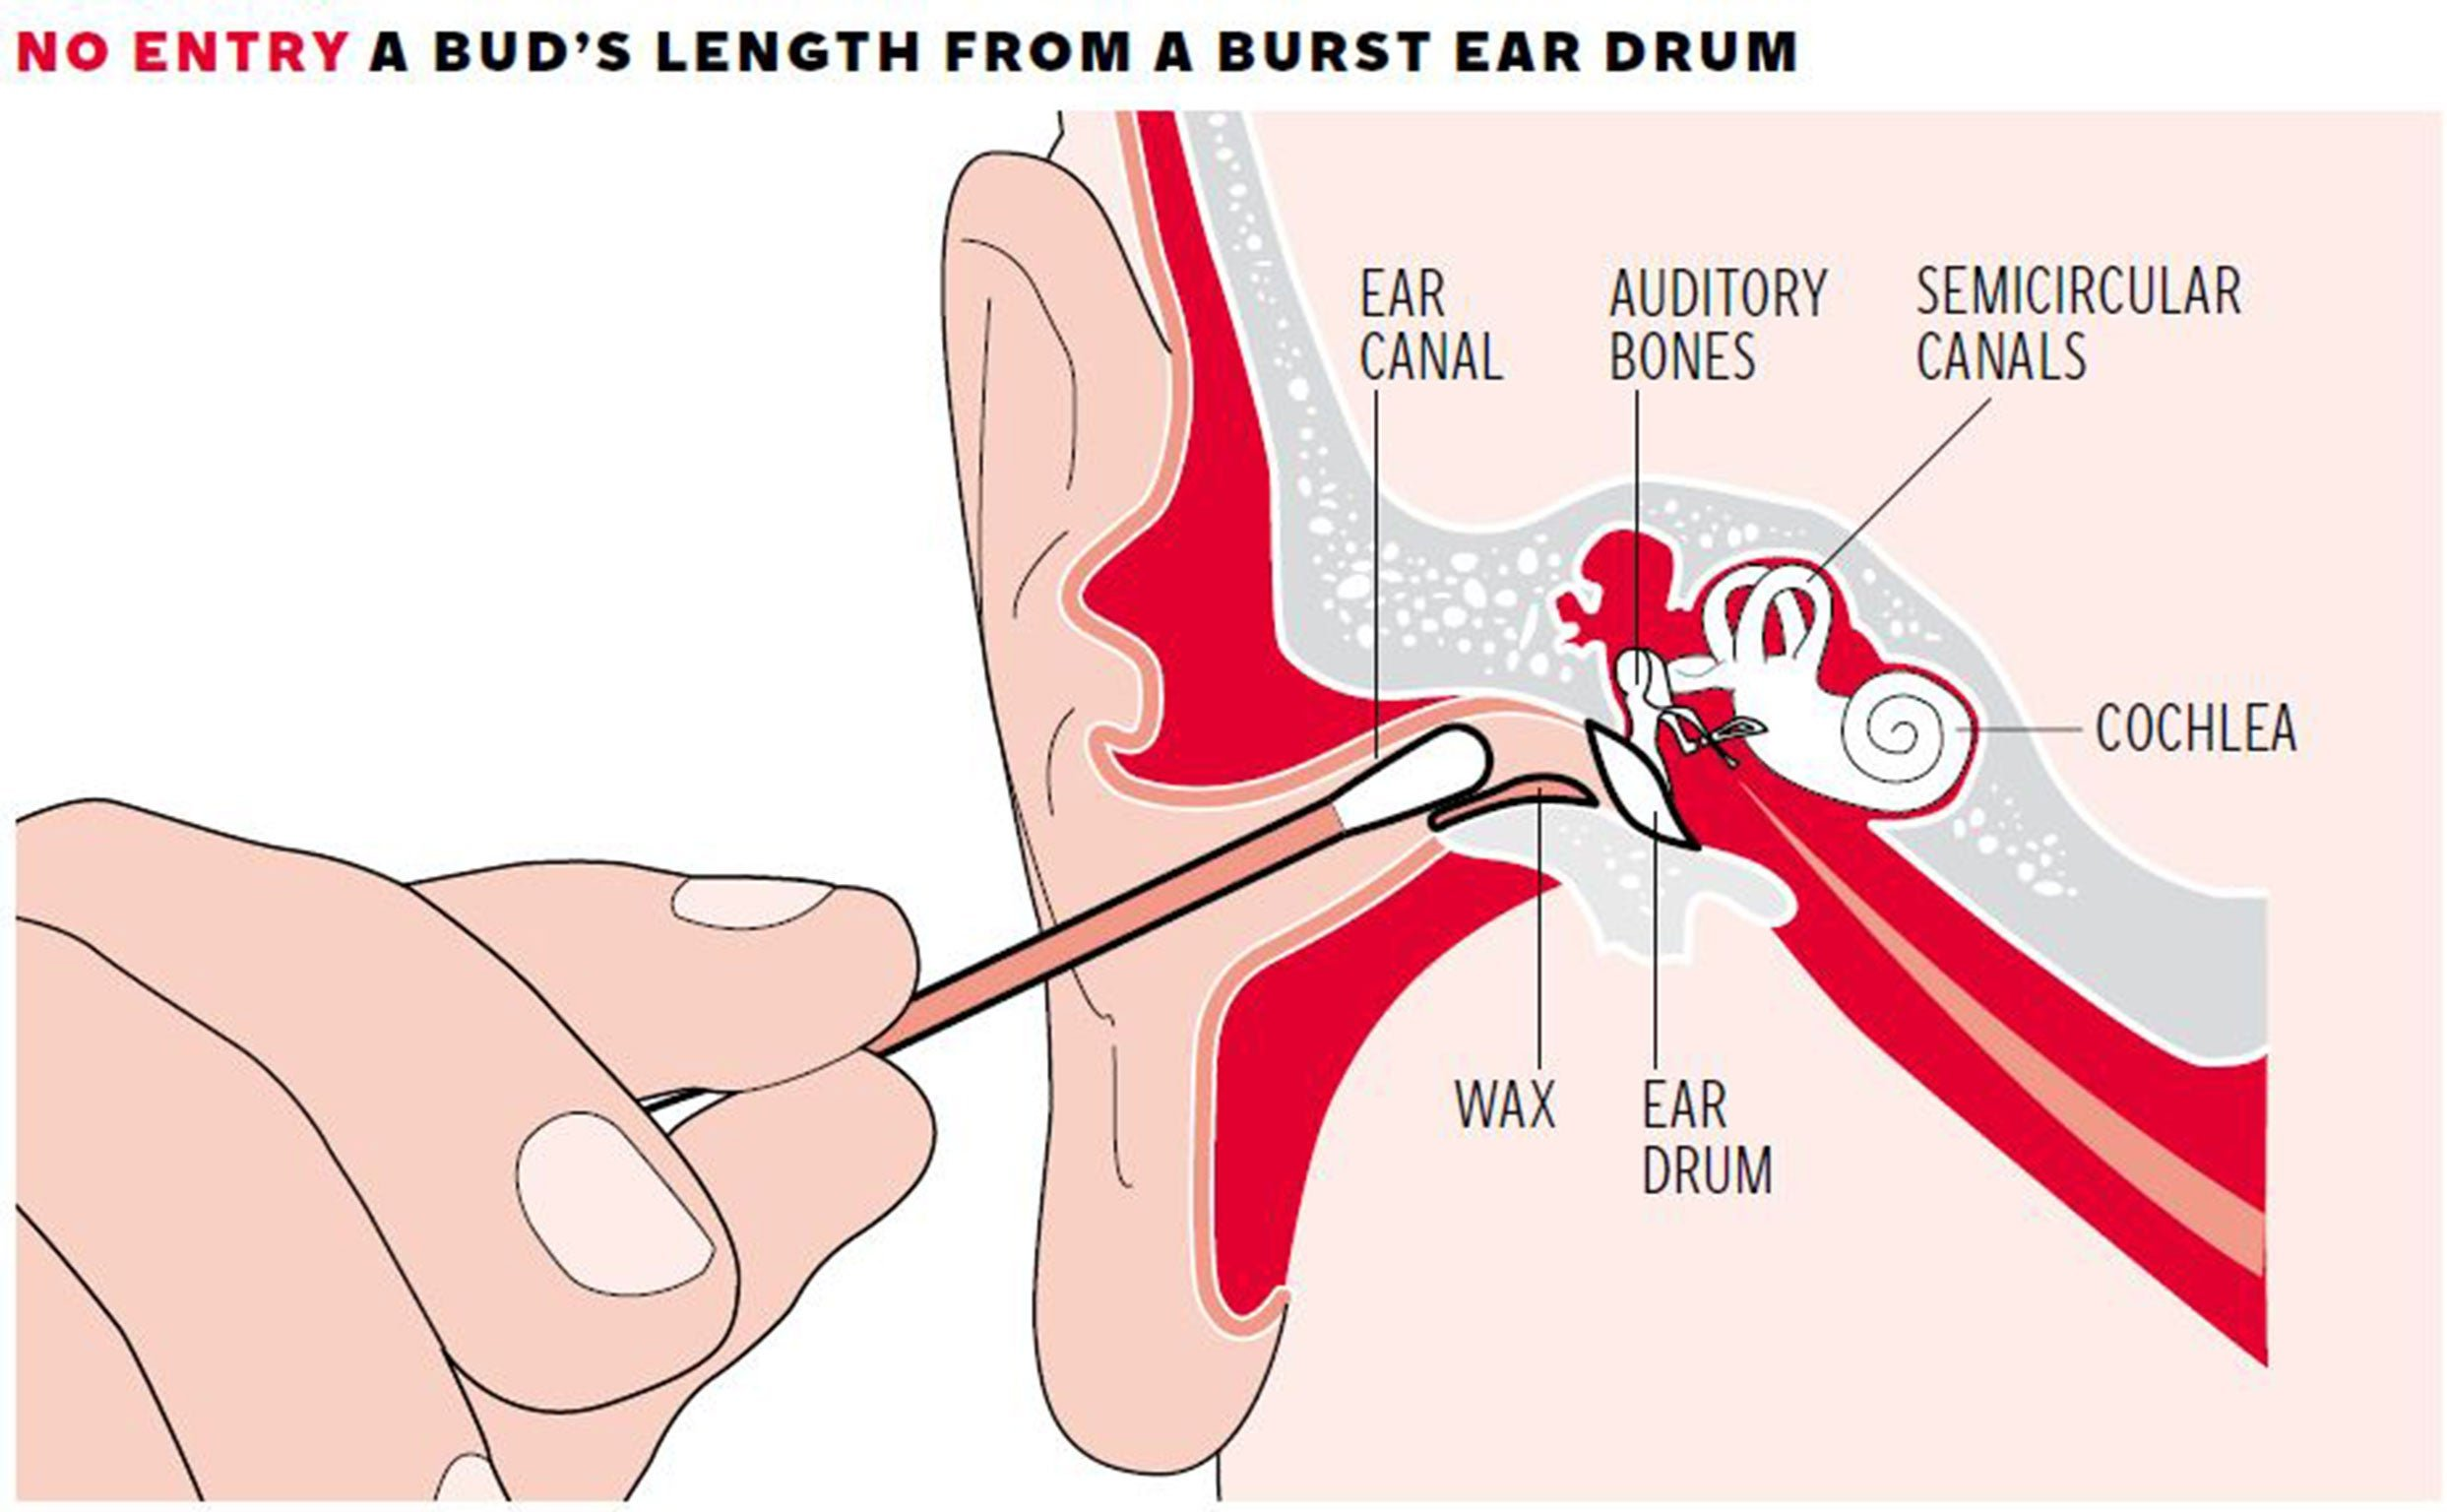 Overcoming Bleeding Ears After Being Hit?